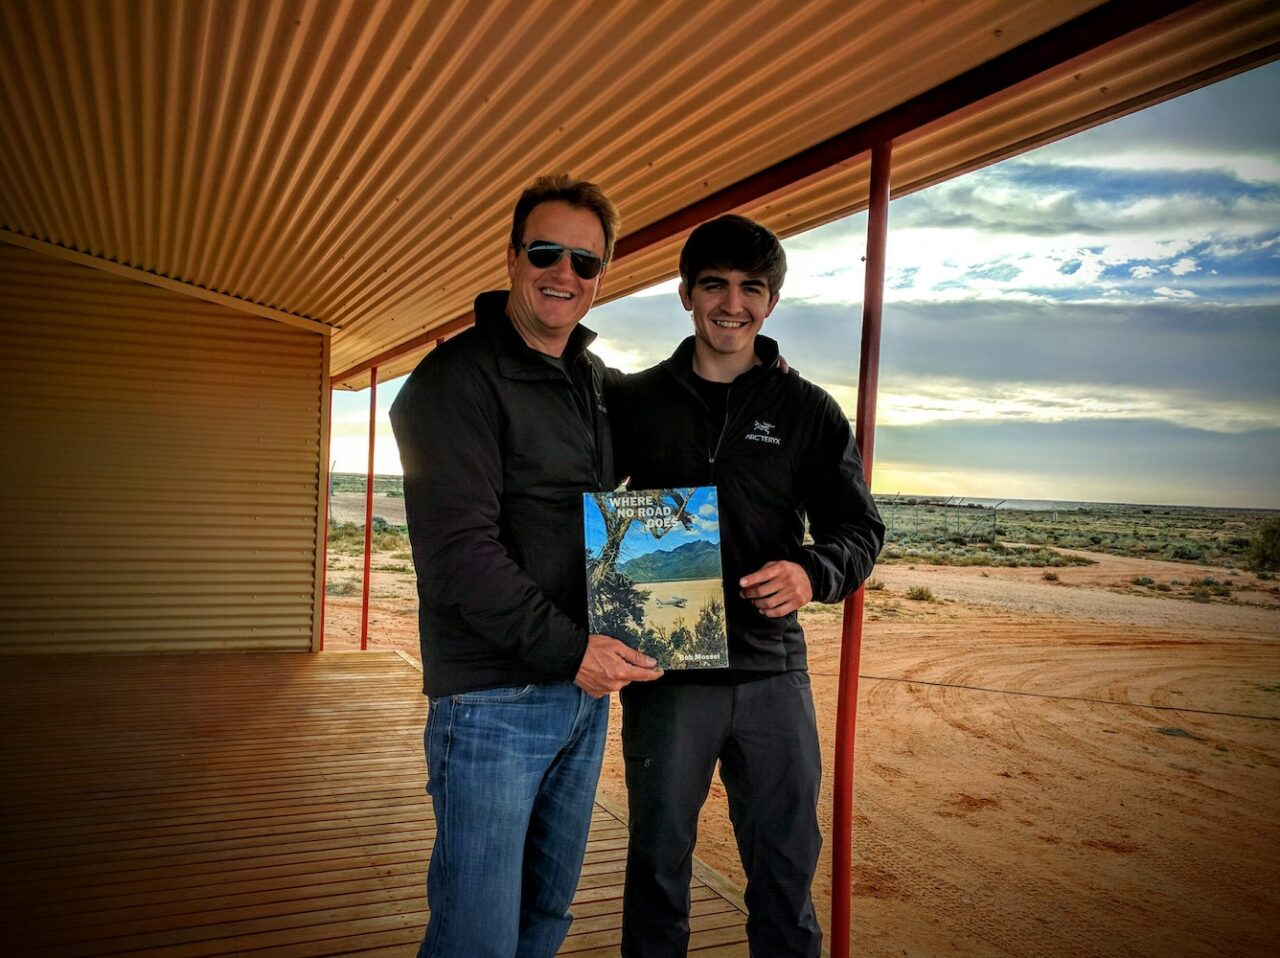 William Creek – we finally get to use the Sat Phone – no cell service – we gone outback